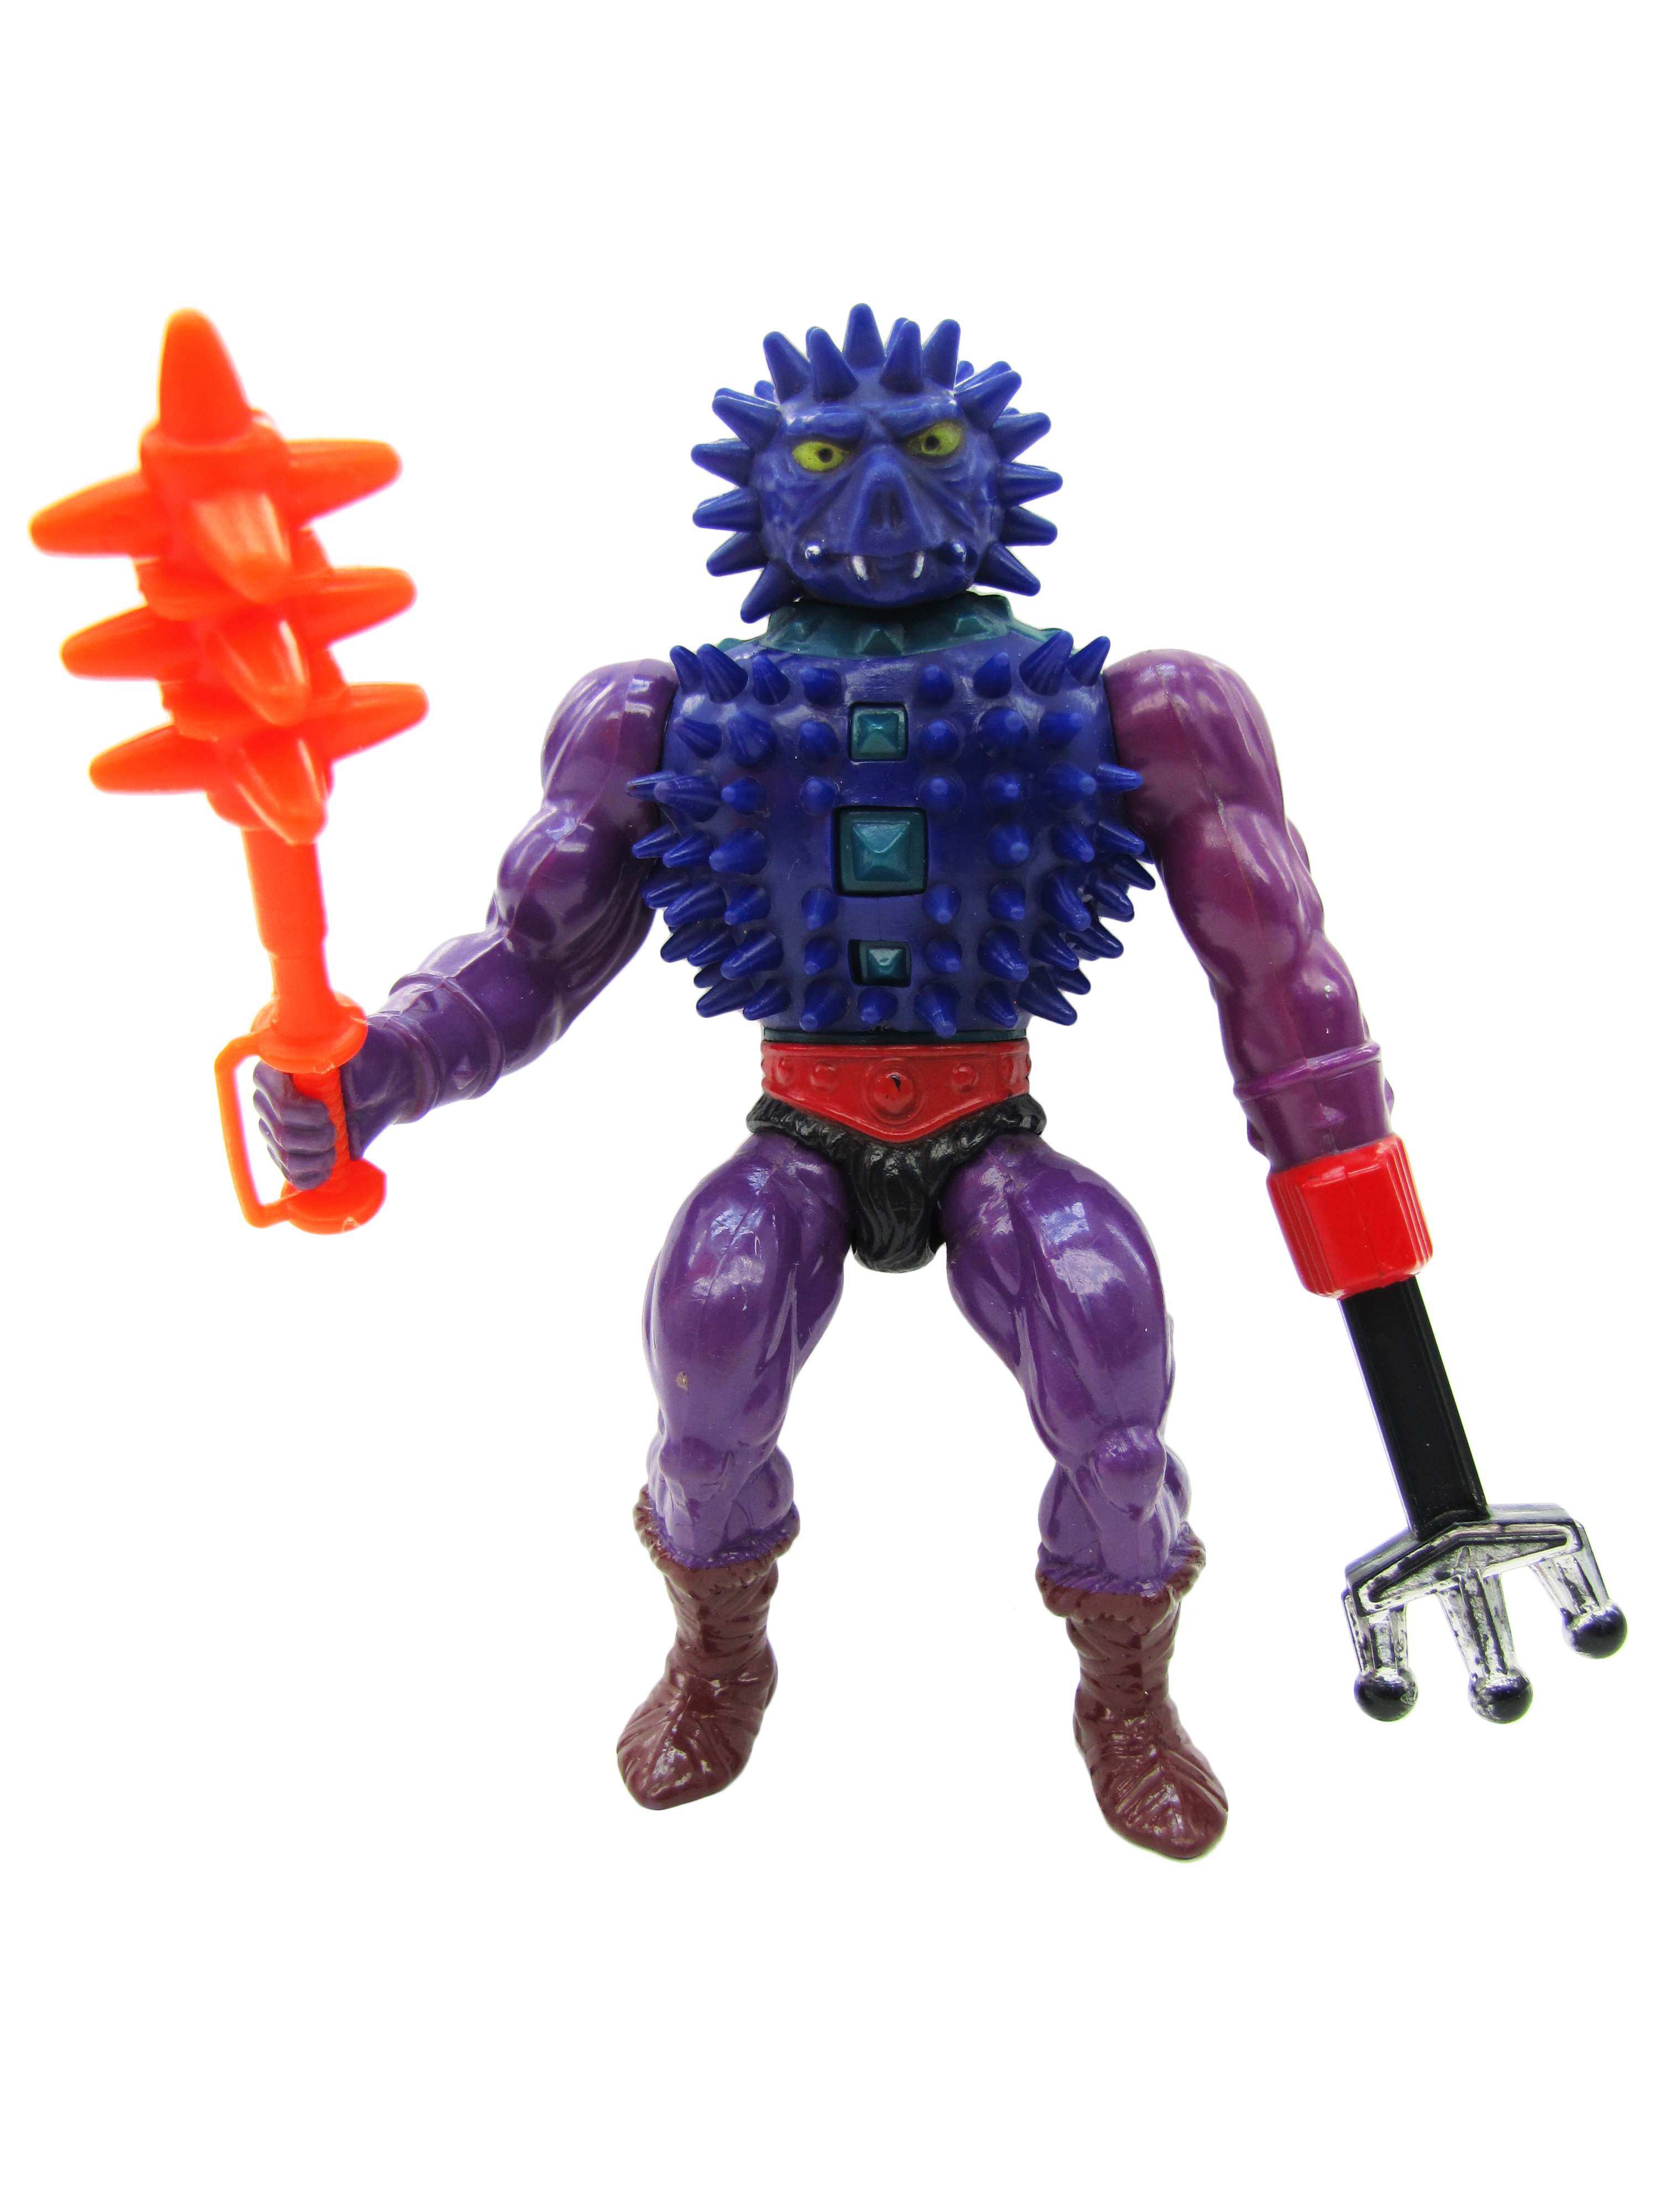 1985 MOTU Masters of the Universe SPIKOR EVIL COMBAT MASTER Complete Near Mint